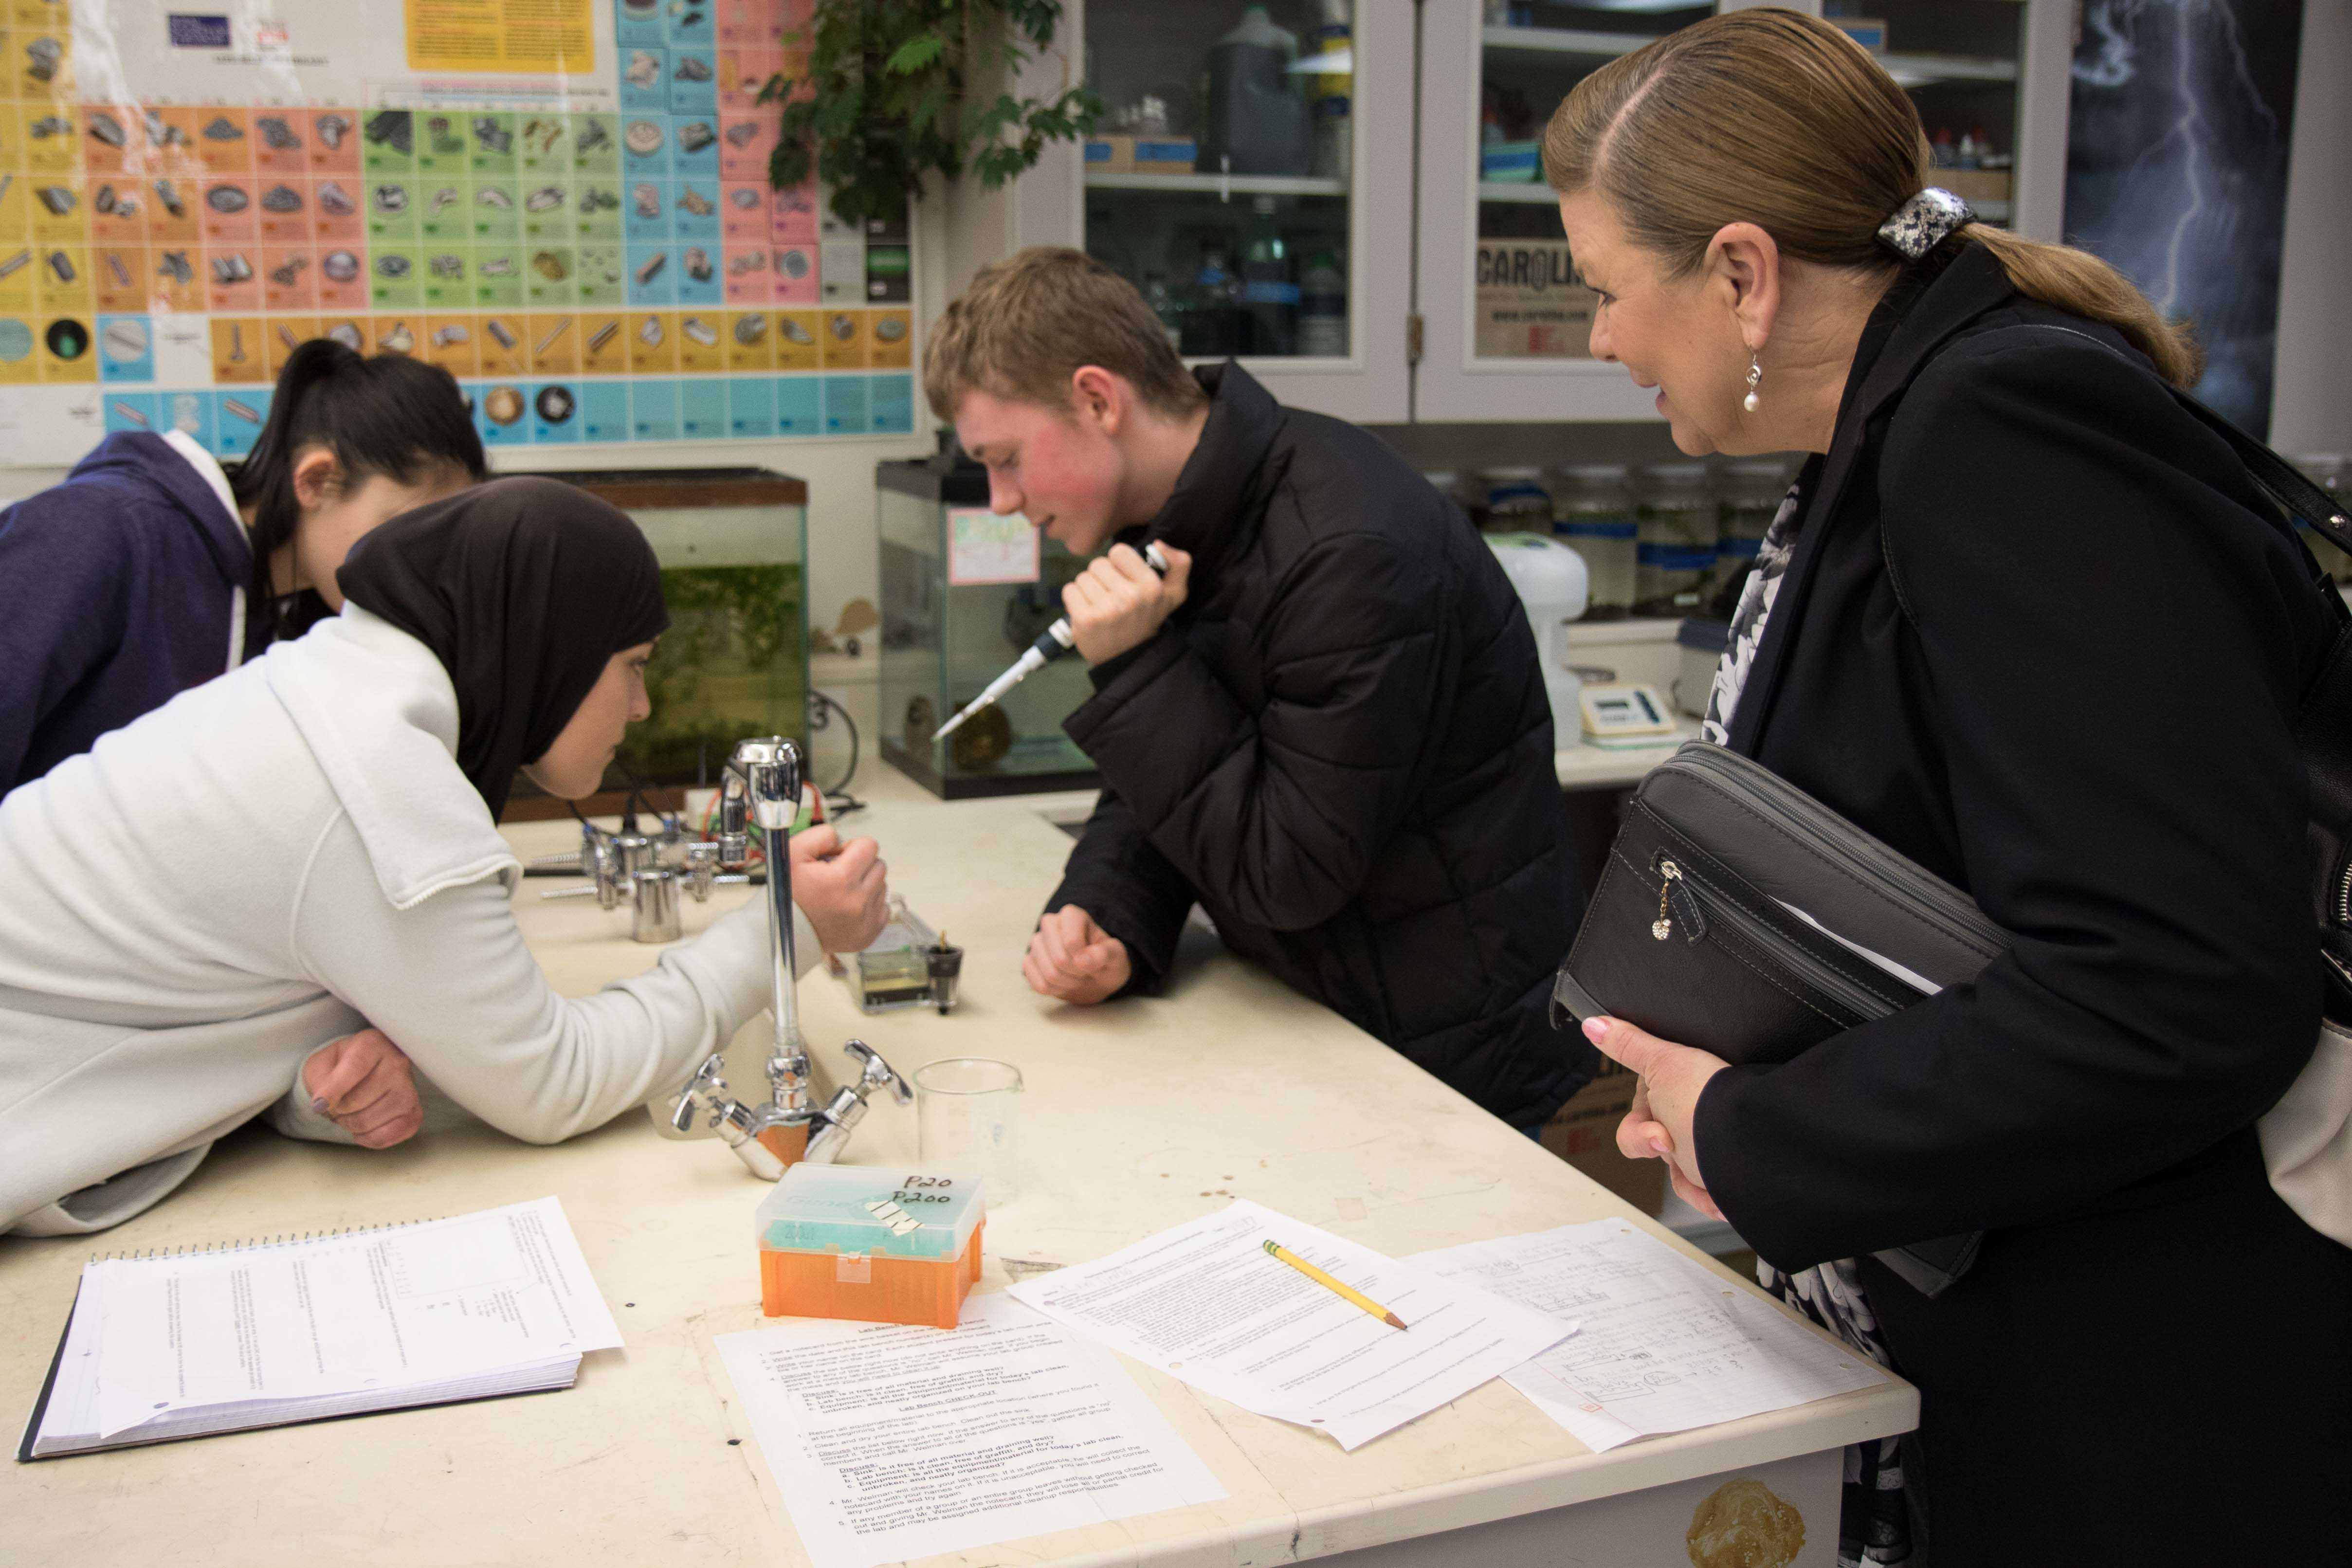 Superintendent+Kris+McDuffy+watching+intently+as+a+freshmen+sets+dyes+for+gel+electrophoresis.+